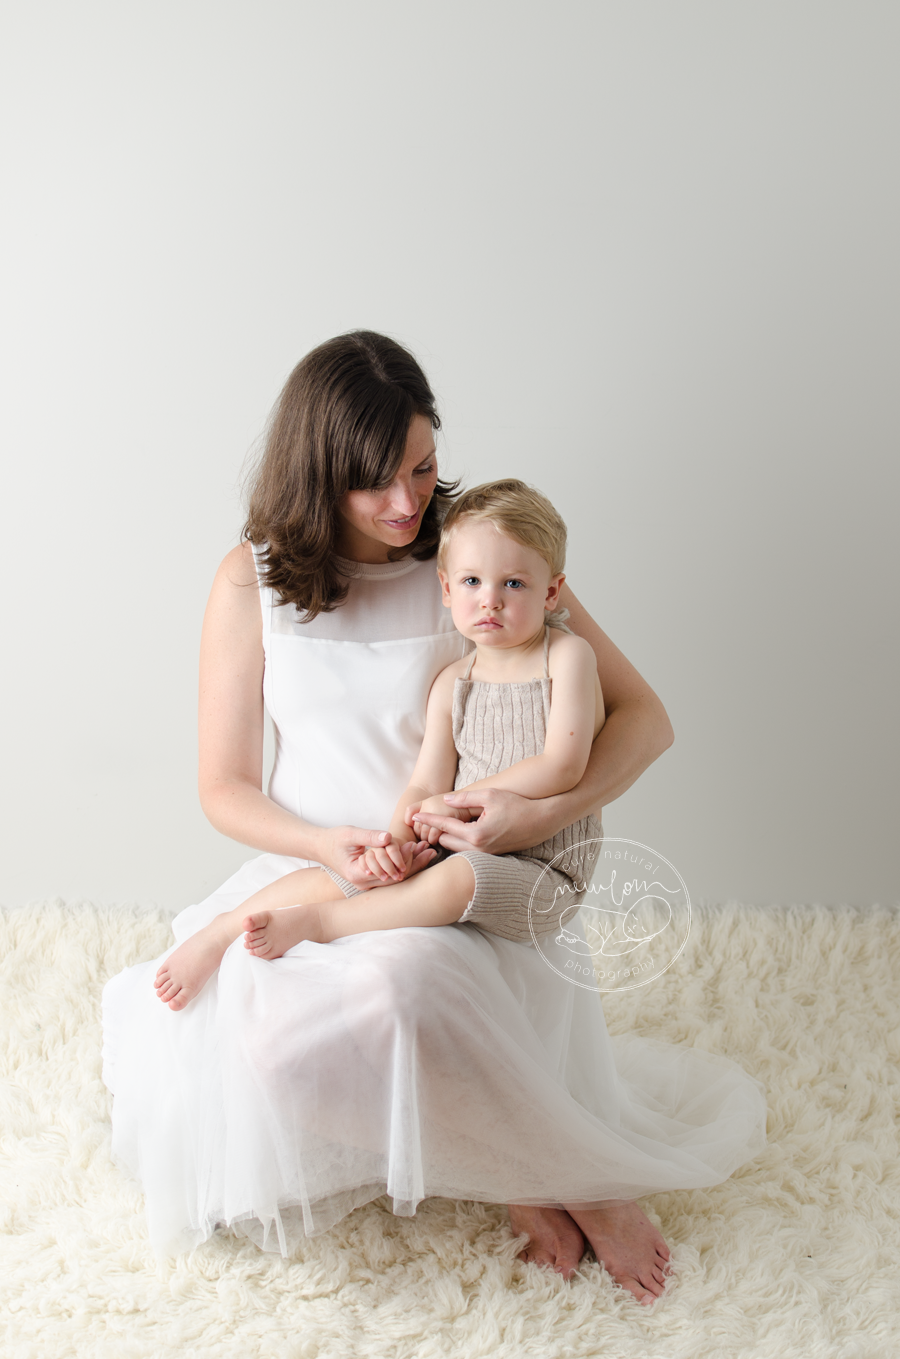 maternity photo session pregnancy photos white tutu dress mom to be baby belly cream flokati little boy_STF7597